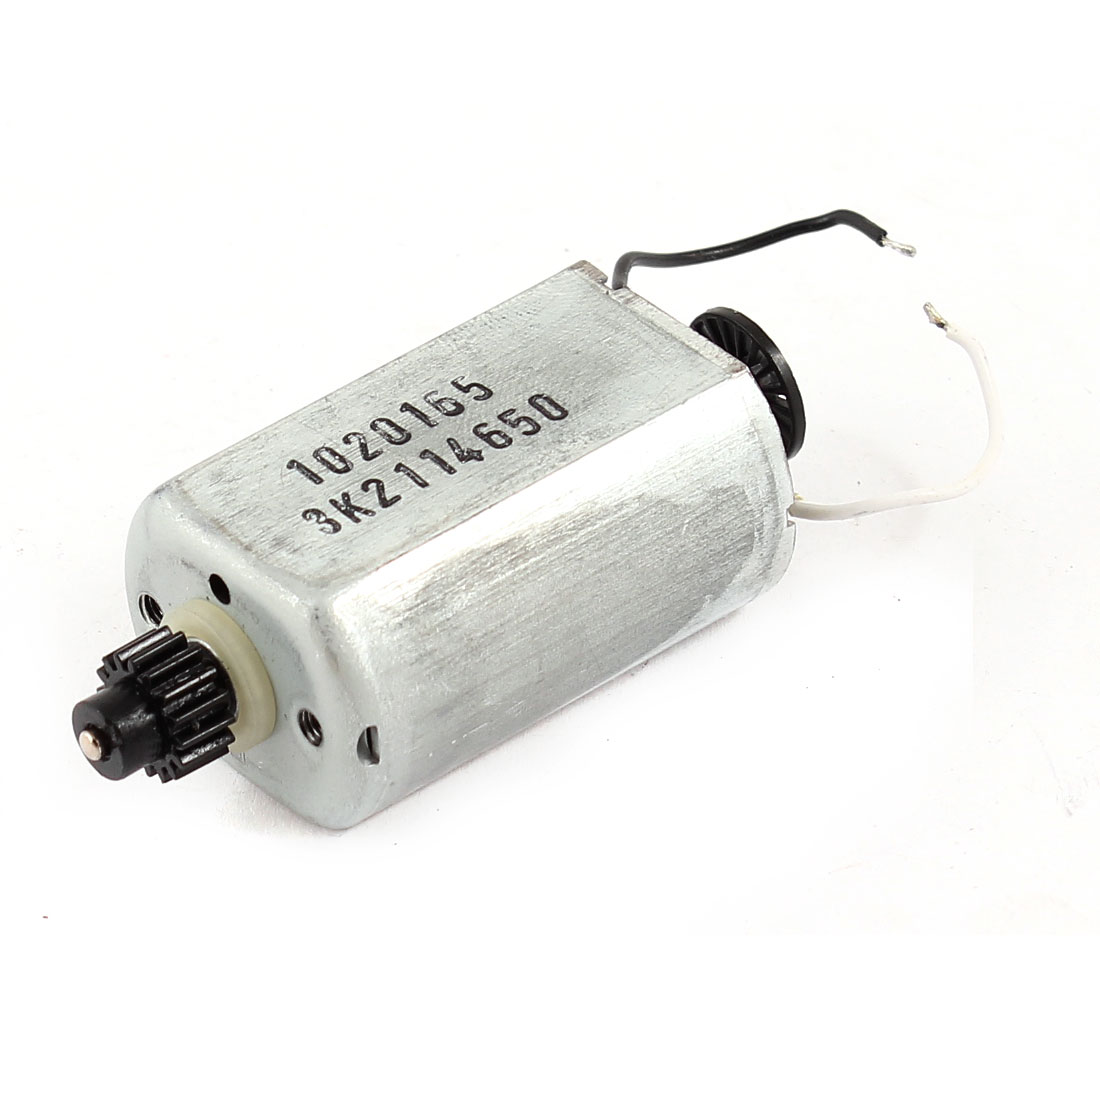 8000RPM-Rotary-Cylinder-Shape-Vibration-DC-Speed-Measuring-Geared-Motor-12V-24V